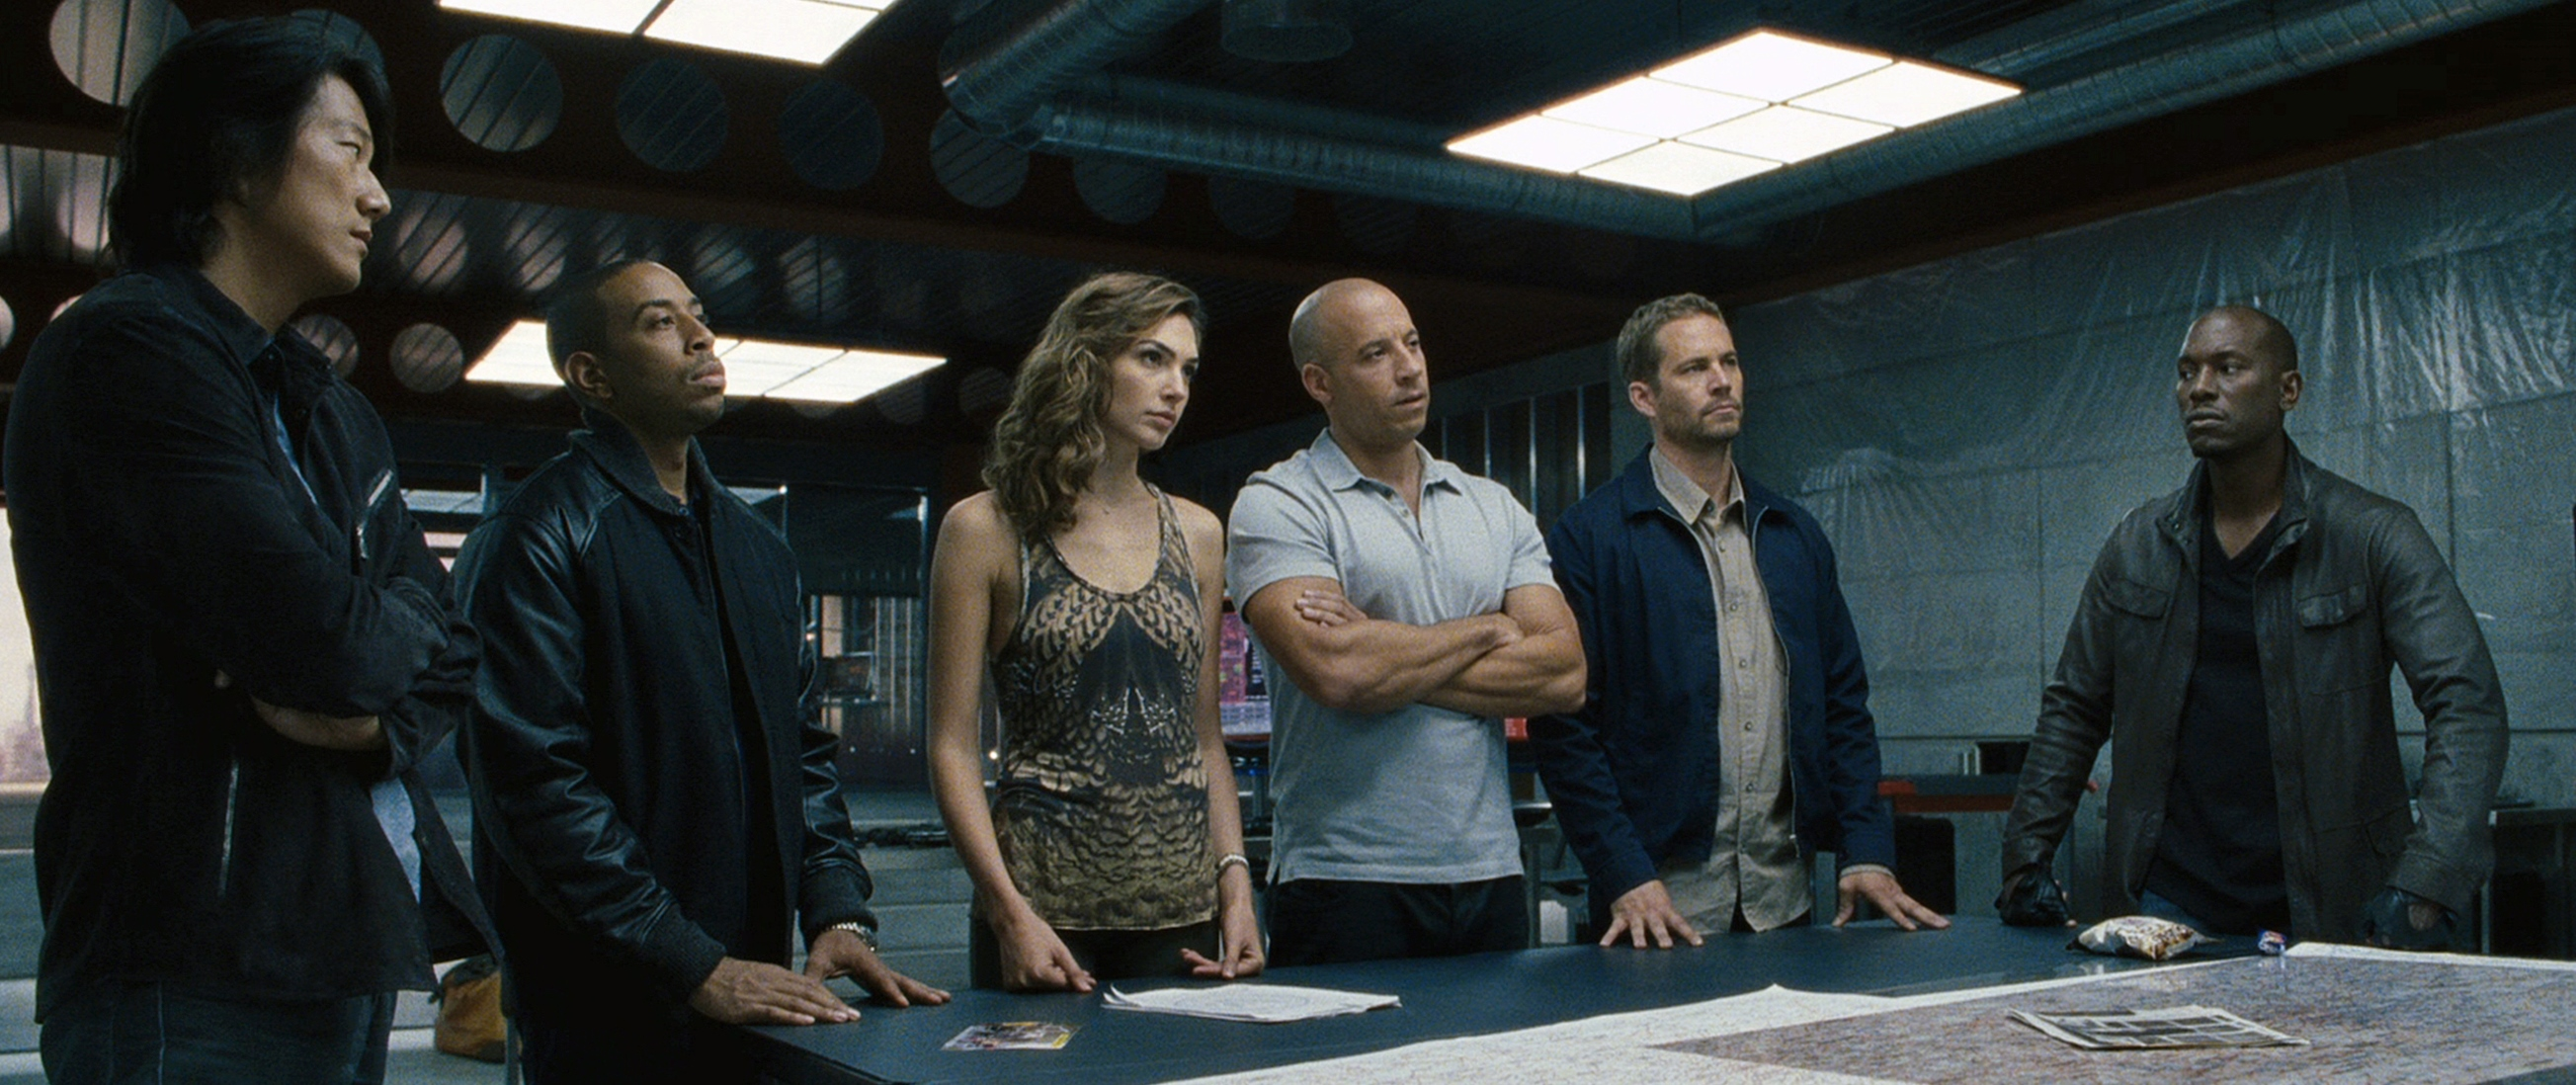 MBTI: The Fast and the Furious Cast | Zombies Ruin Everything